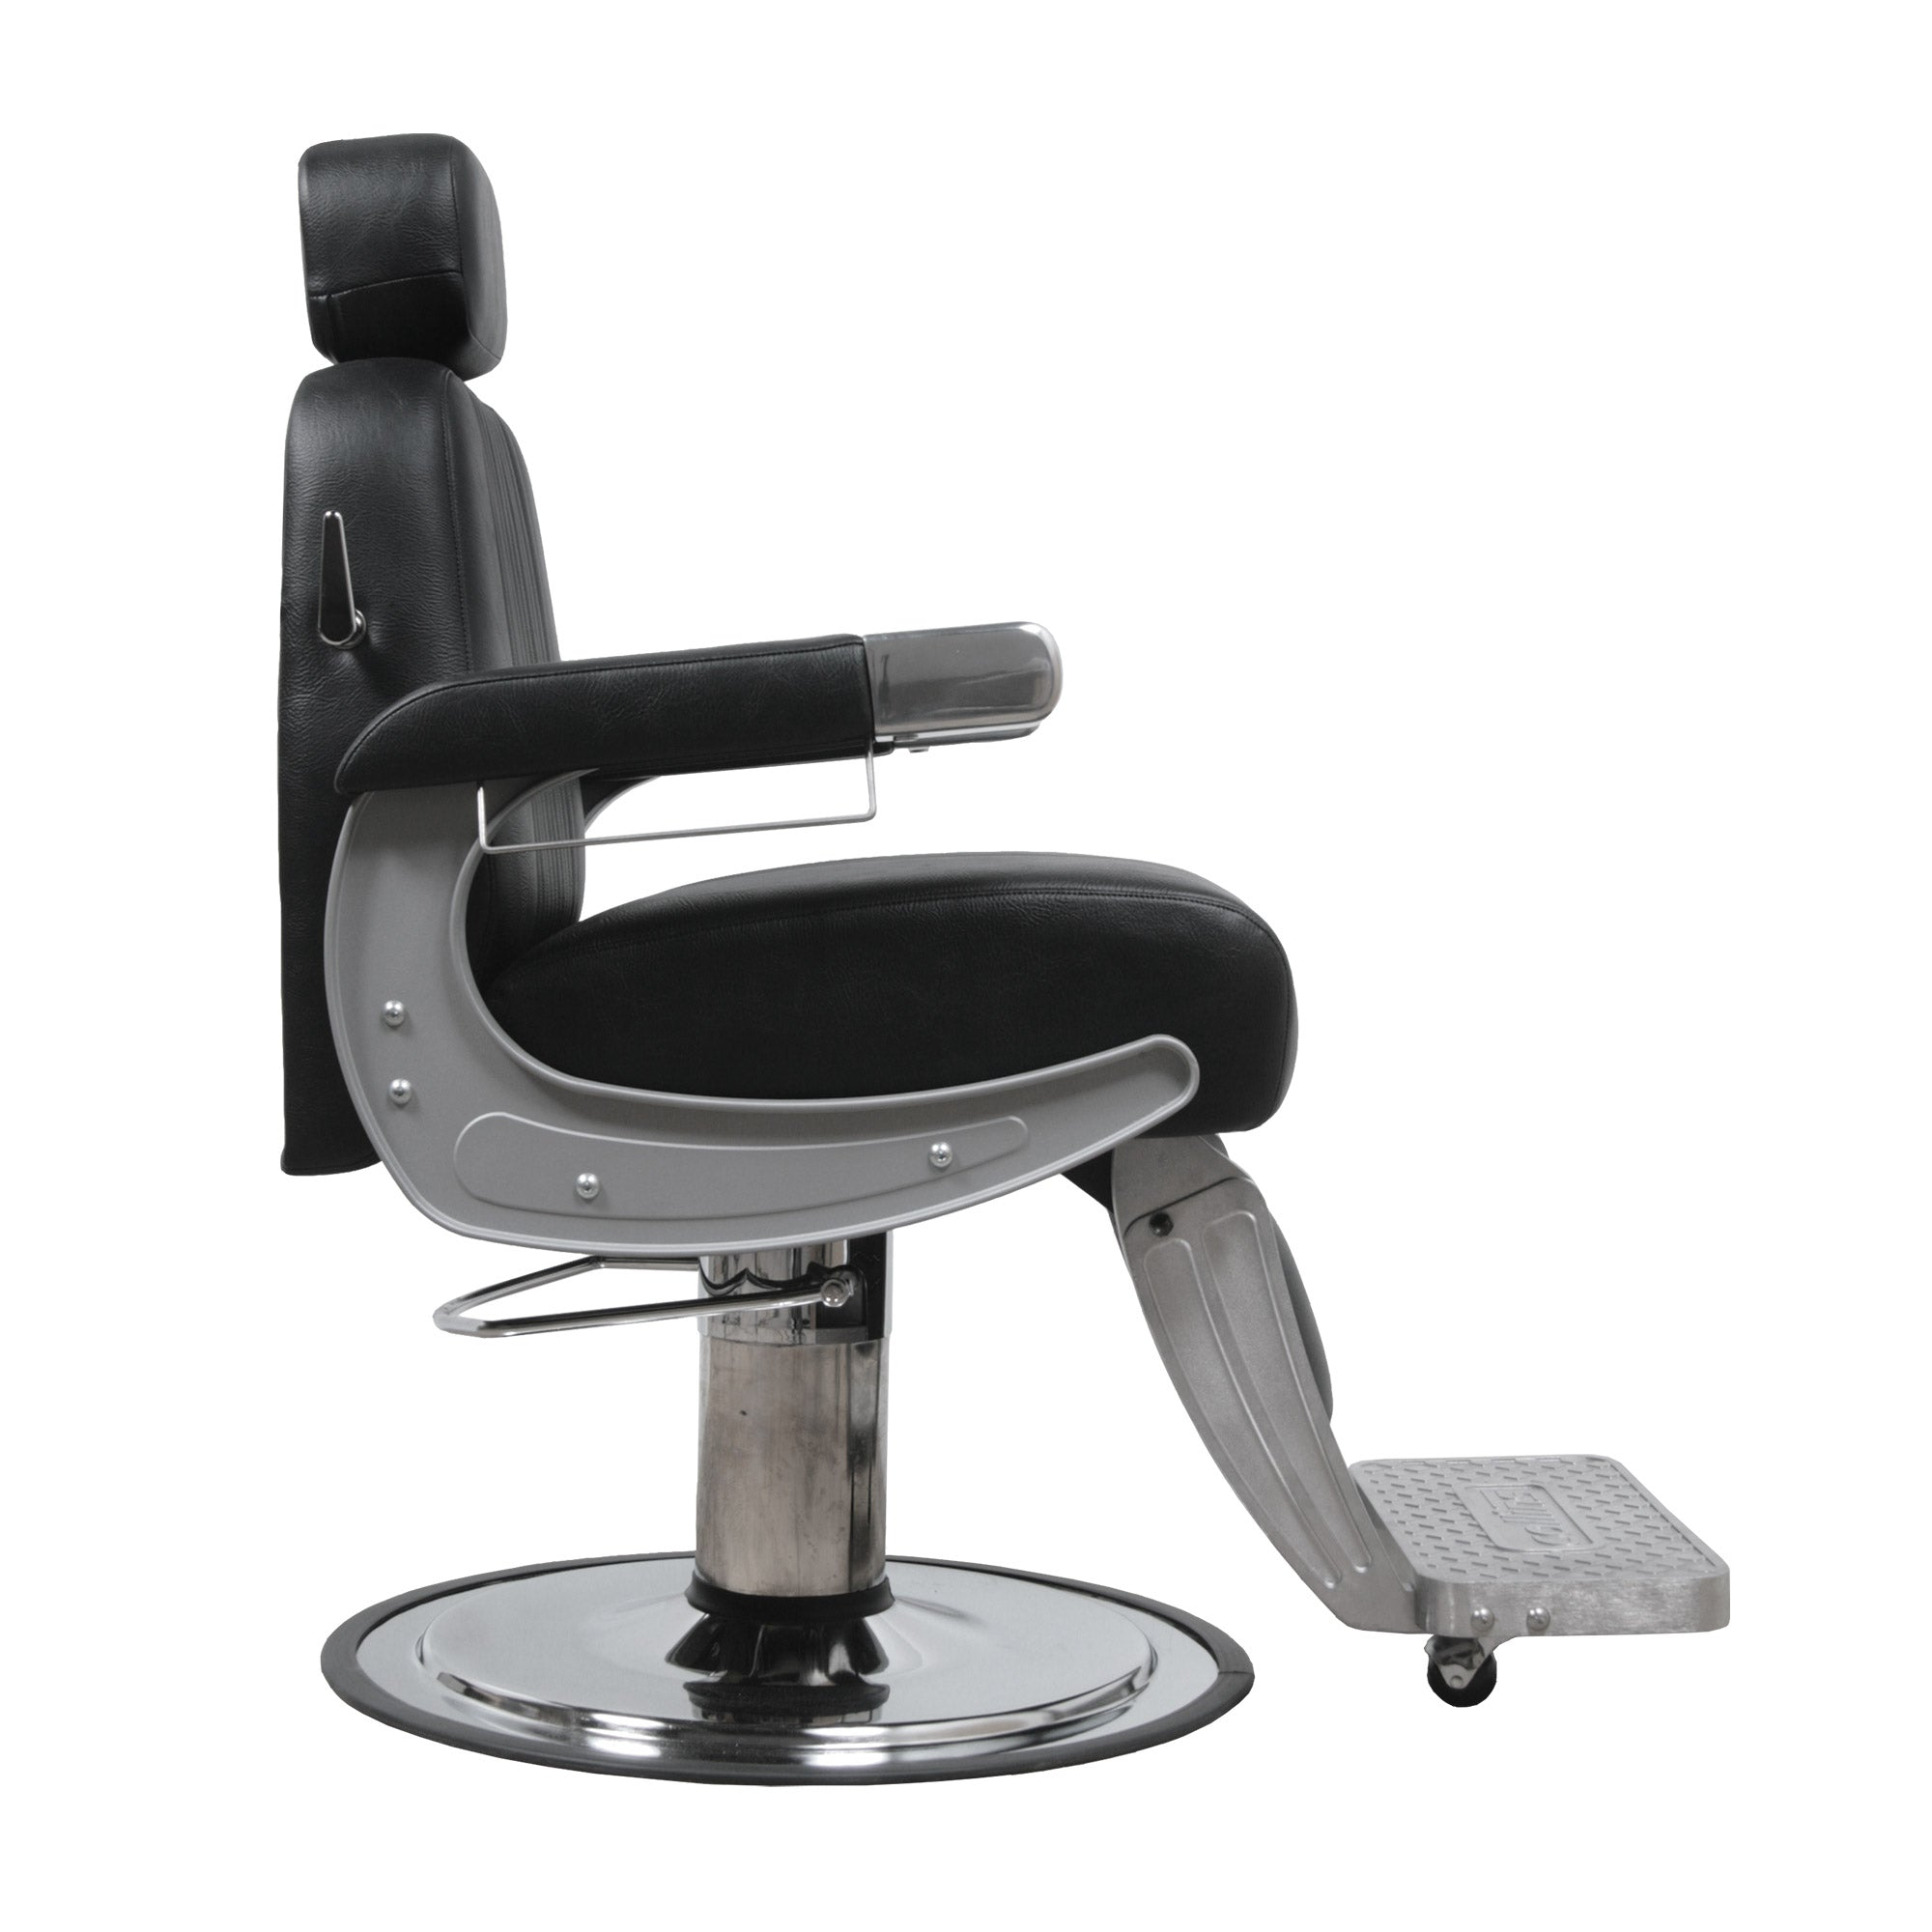 Cobalt Omega Barber Chair - Collins